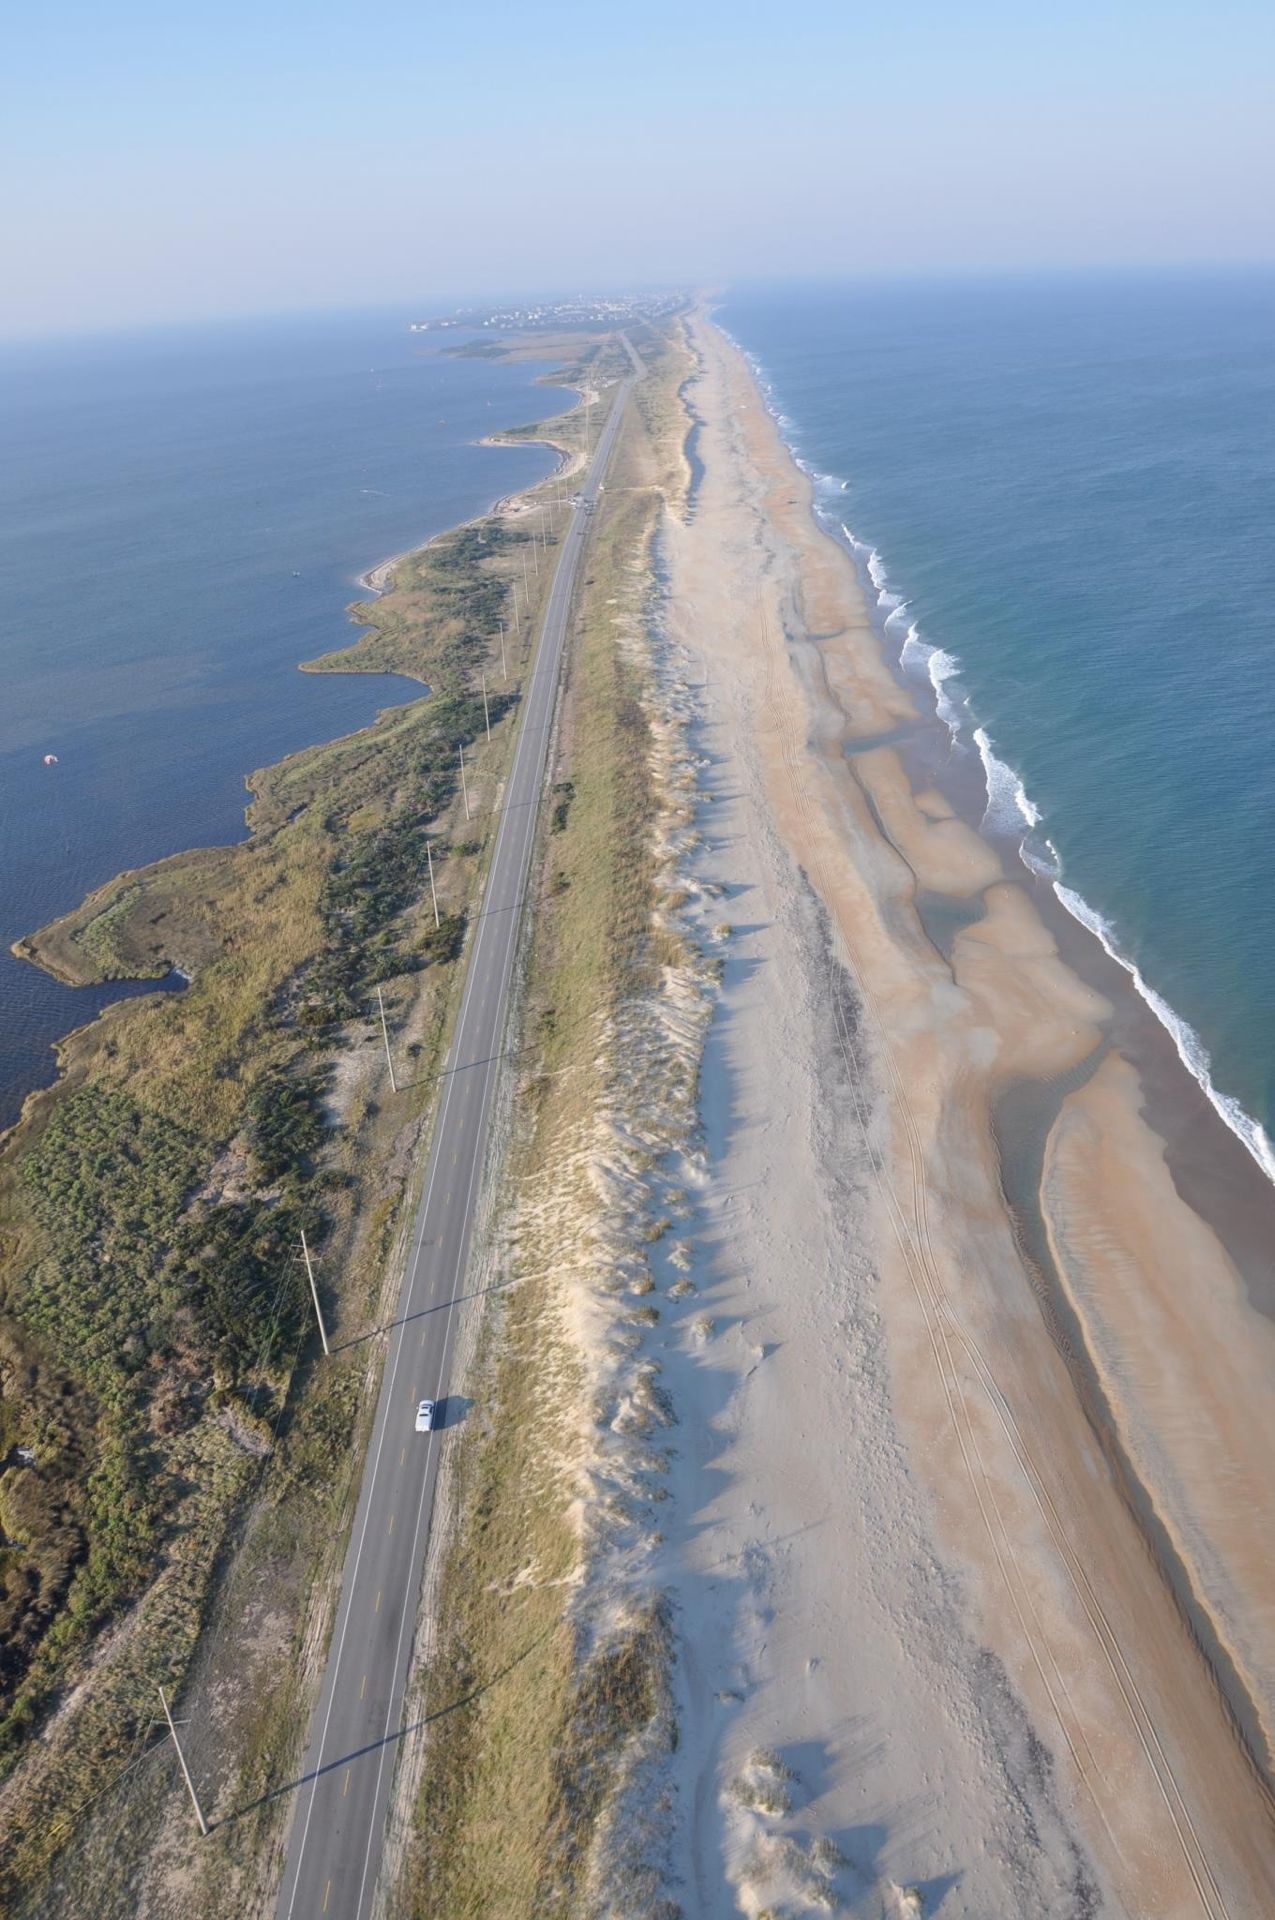 Pin By Brenda Lund On Beautiful Beach Scenery Scenic Byway Scenic Outer Banks North Carolina